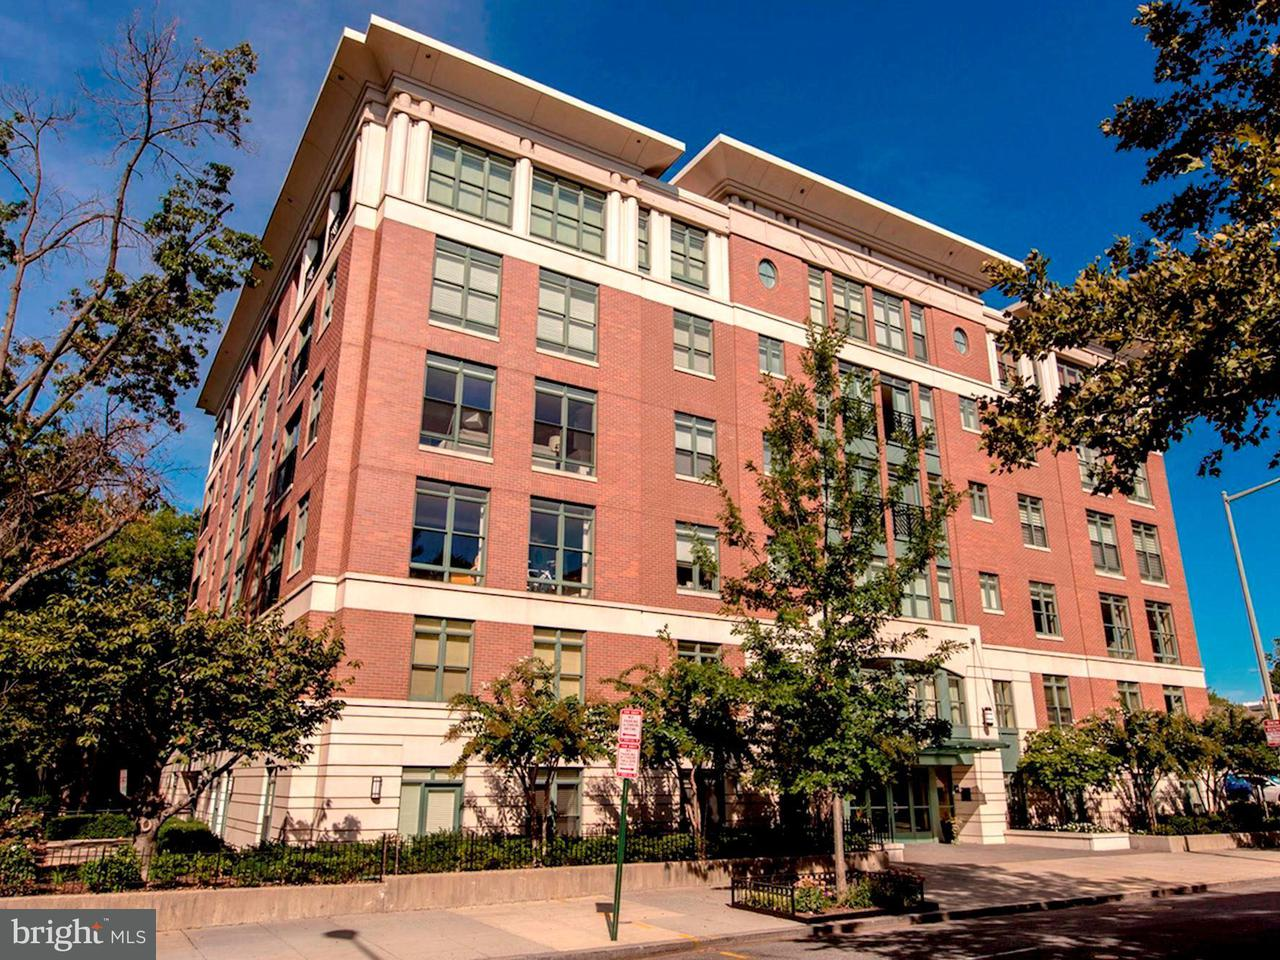 Condominium for Sale at 1414 22nd St Nw #51 1414 22nd St Nw #51 Washington, District Of Columbia 20037 United States